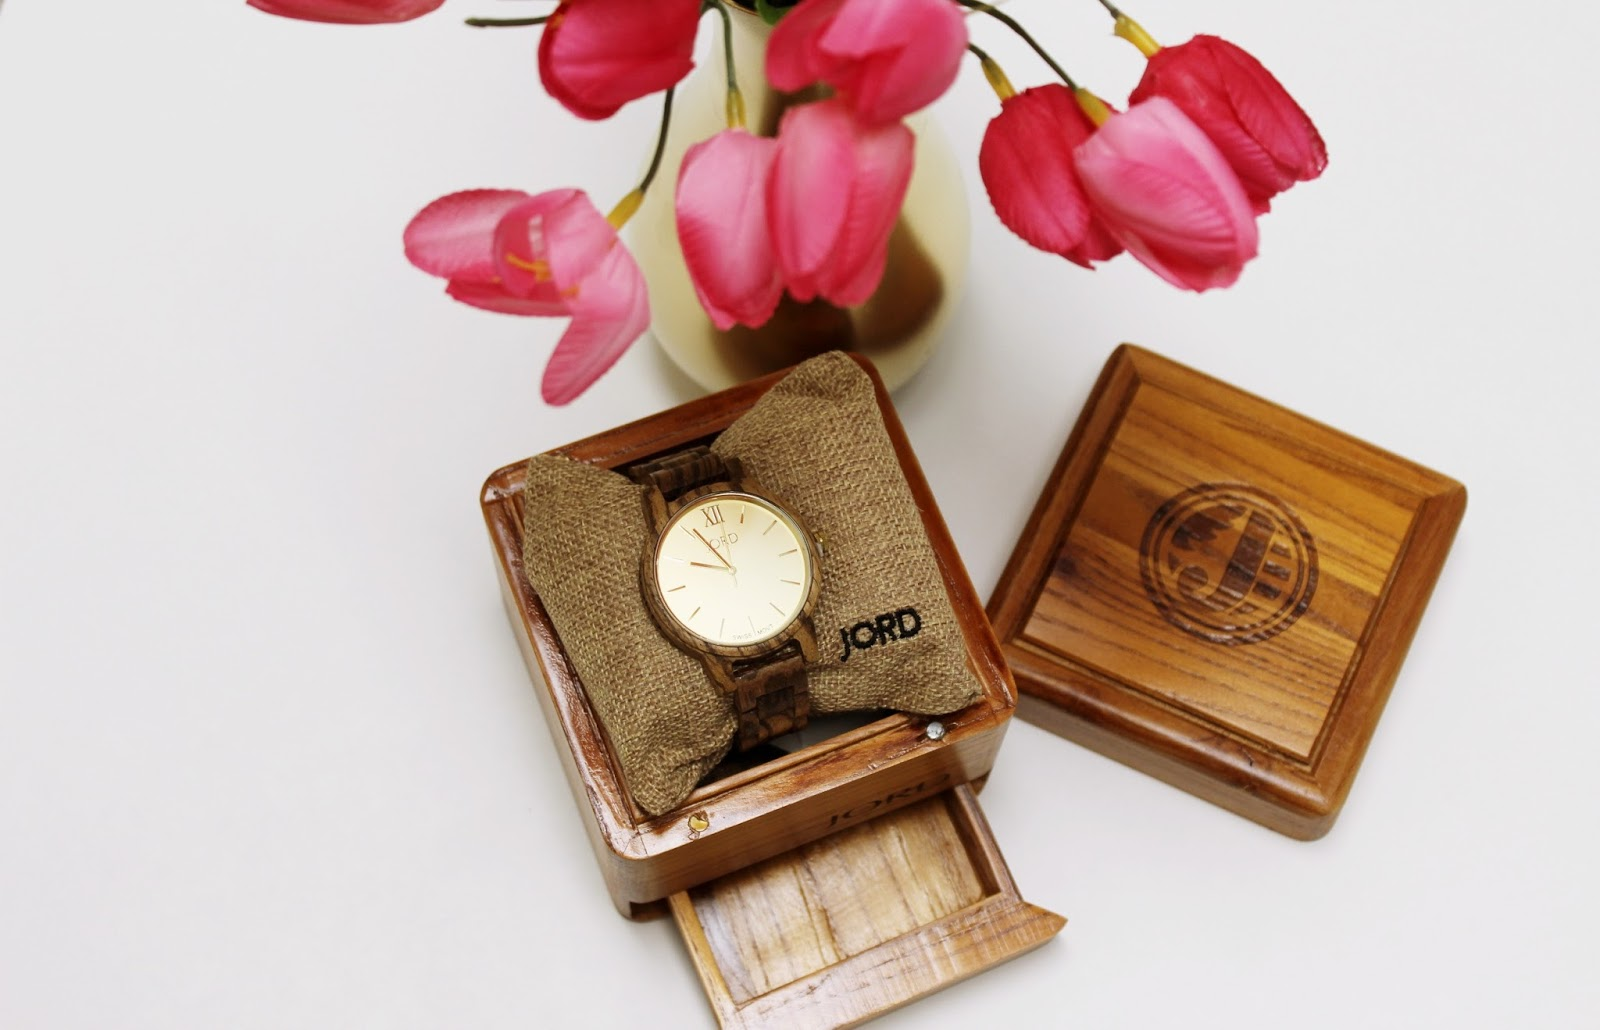 JORD, wood watches, spring watch, spring styles, JORD watches, luxury watch, accessories